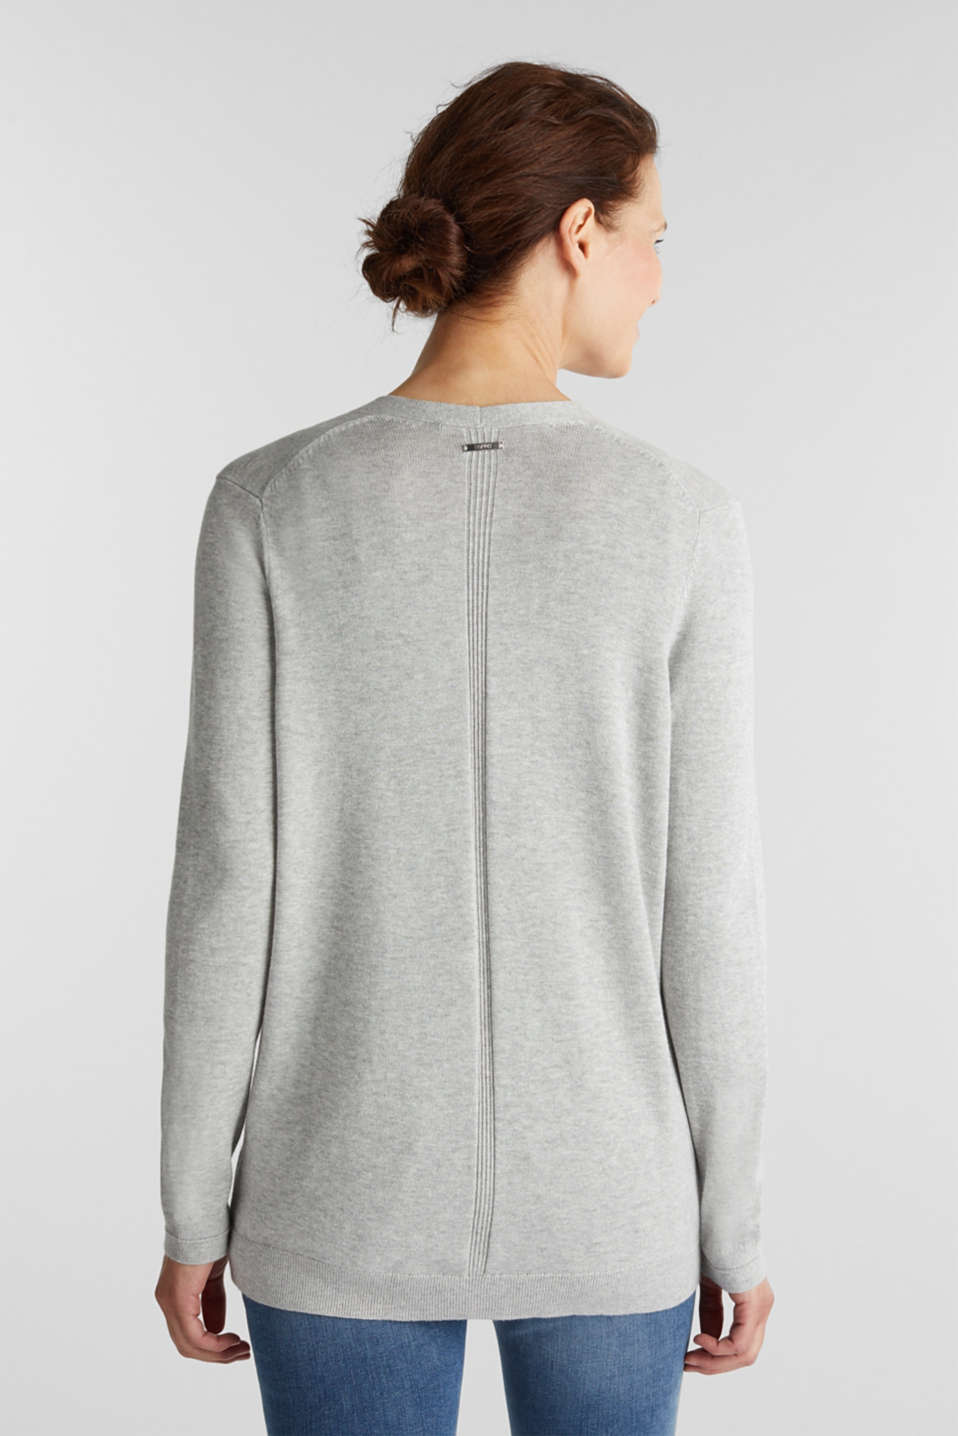 Cardigan with organic cotton, LIGHT GREY 5, detail image number 3